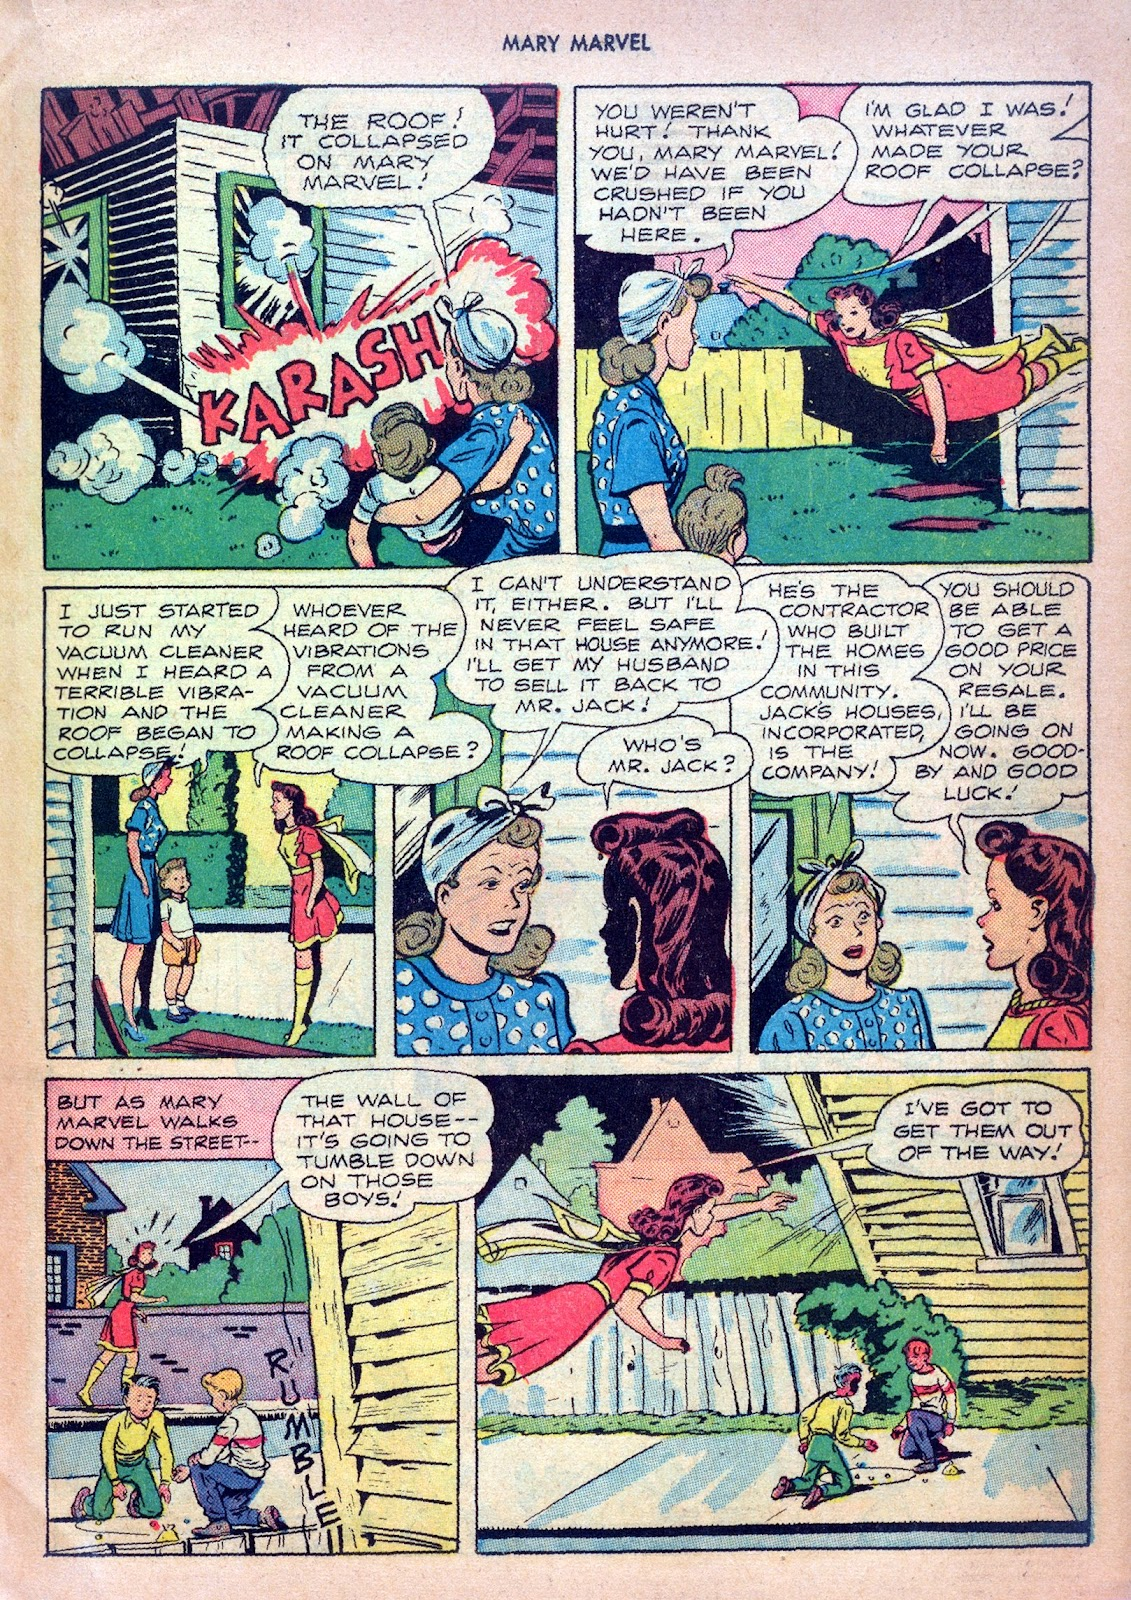 Read online Mary Marvel comic -  Issue #27 - 19